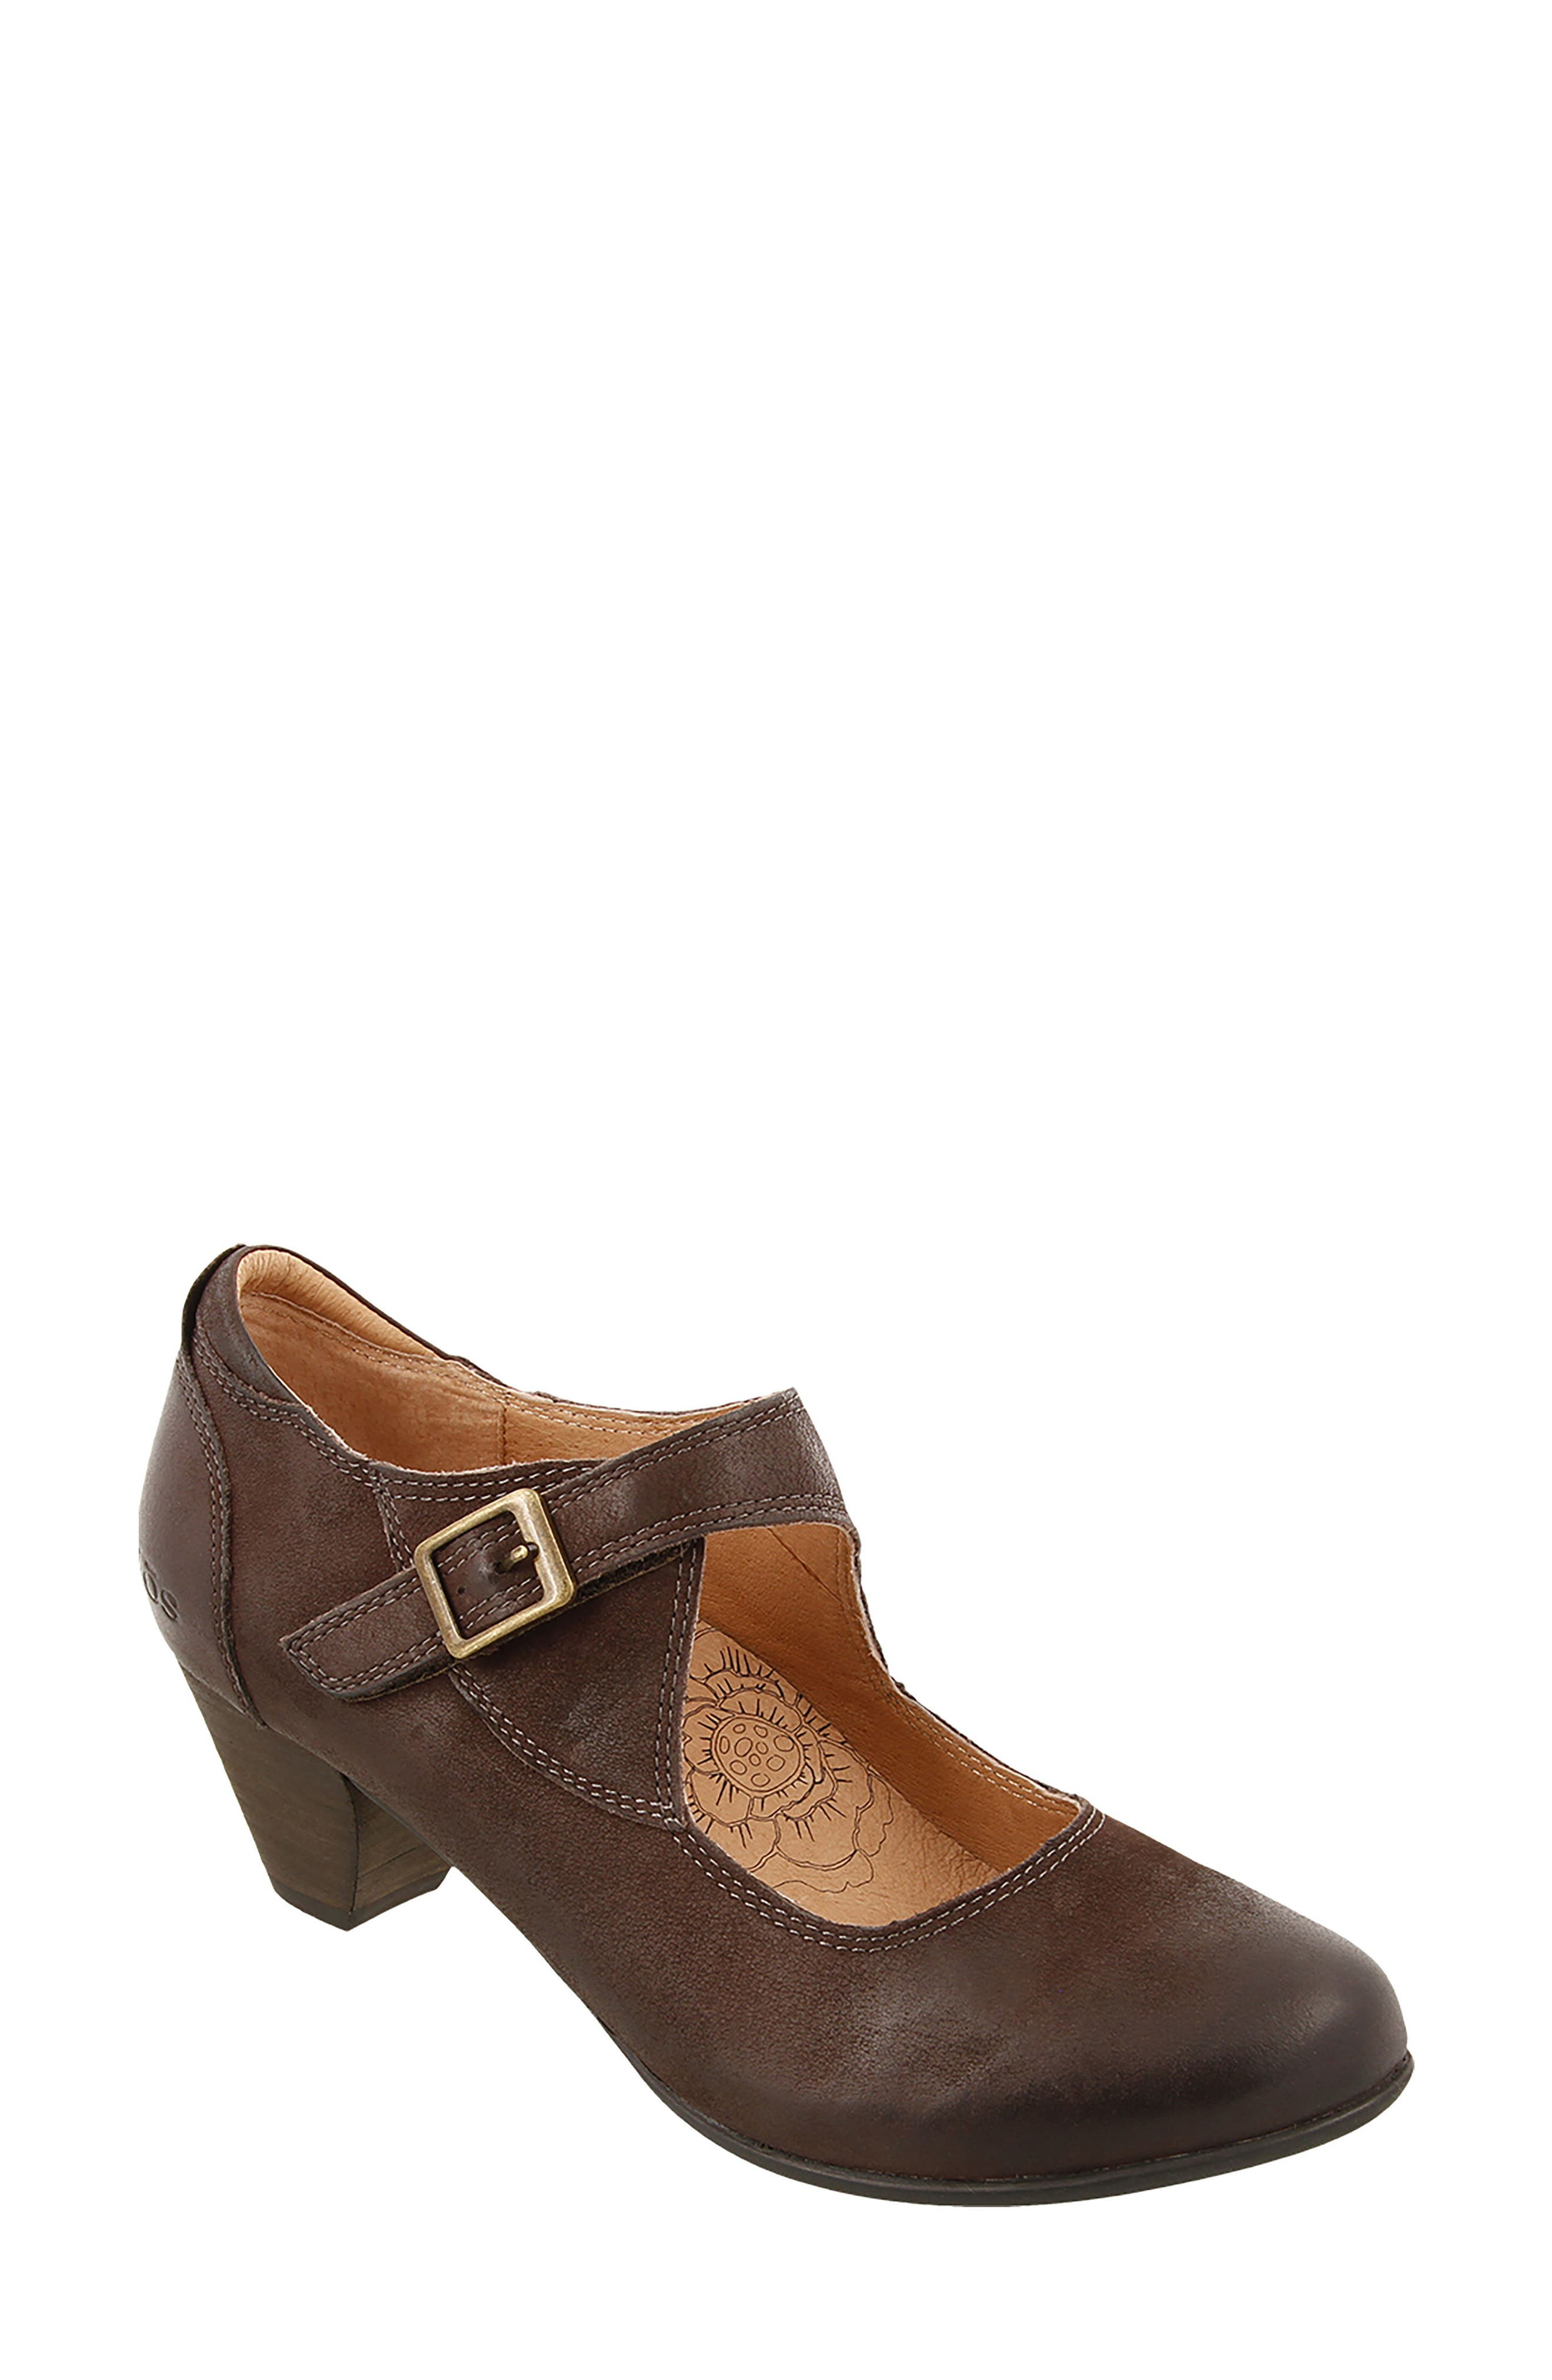 Studio Mary Jane Pump,                         Main,                         color, Chocolate Oiled Leather